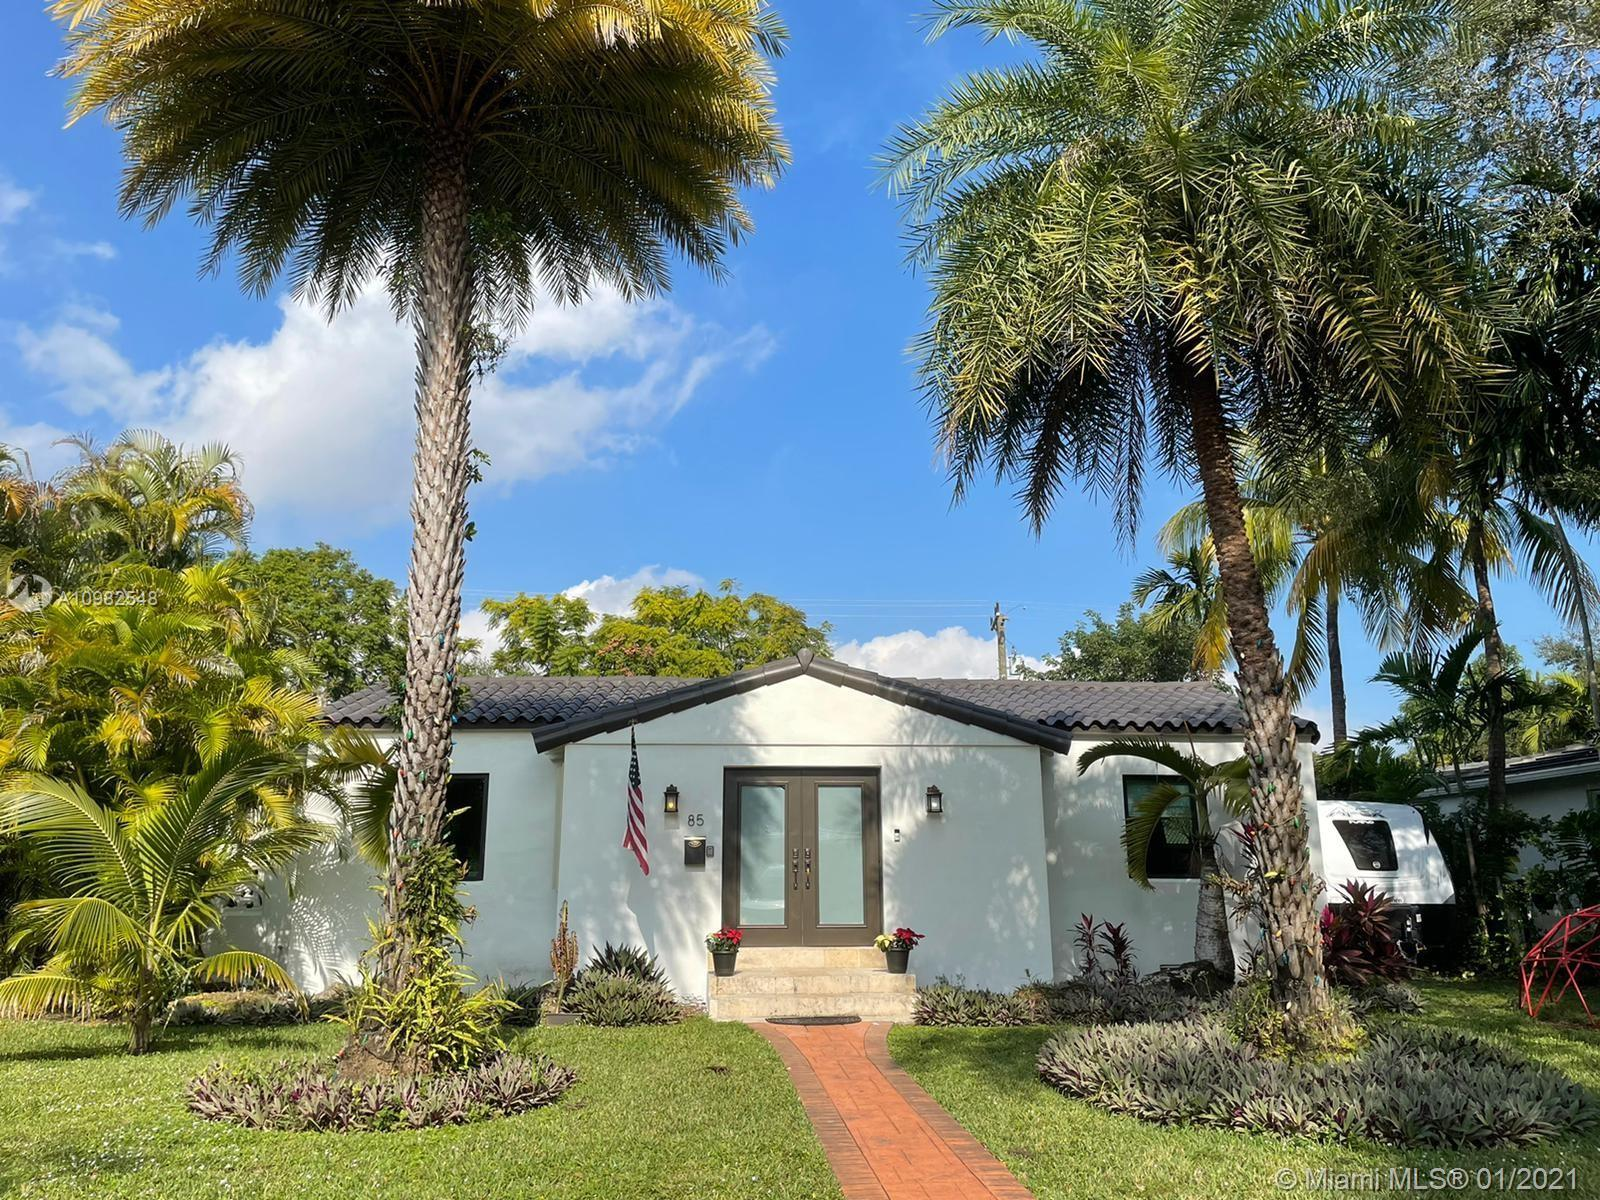 Location! Great opportunity in the highly desirable city of Miami Shores! Enjoy this 2 bed and 1 bat